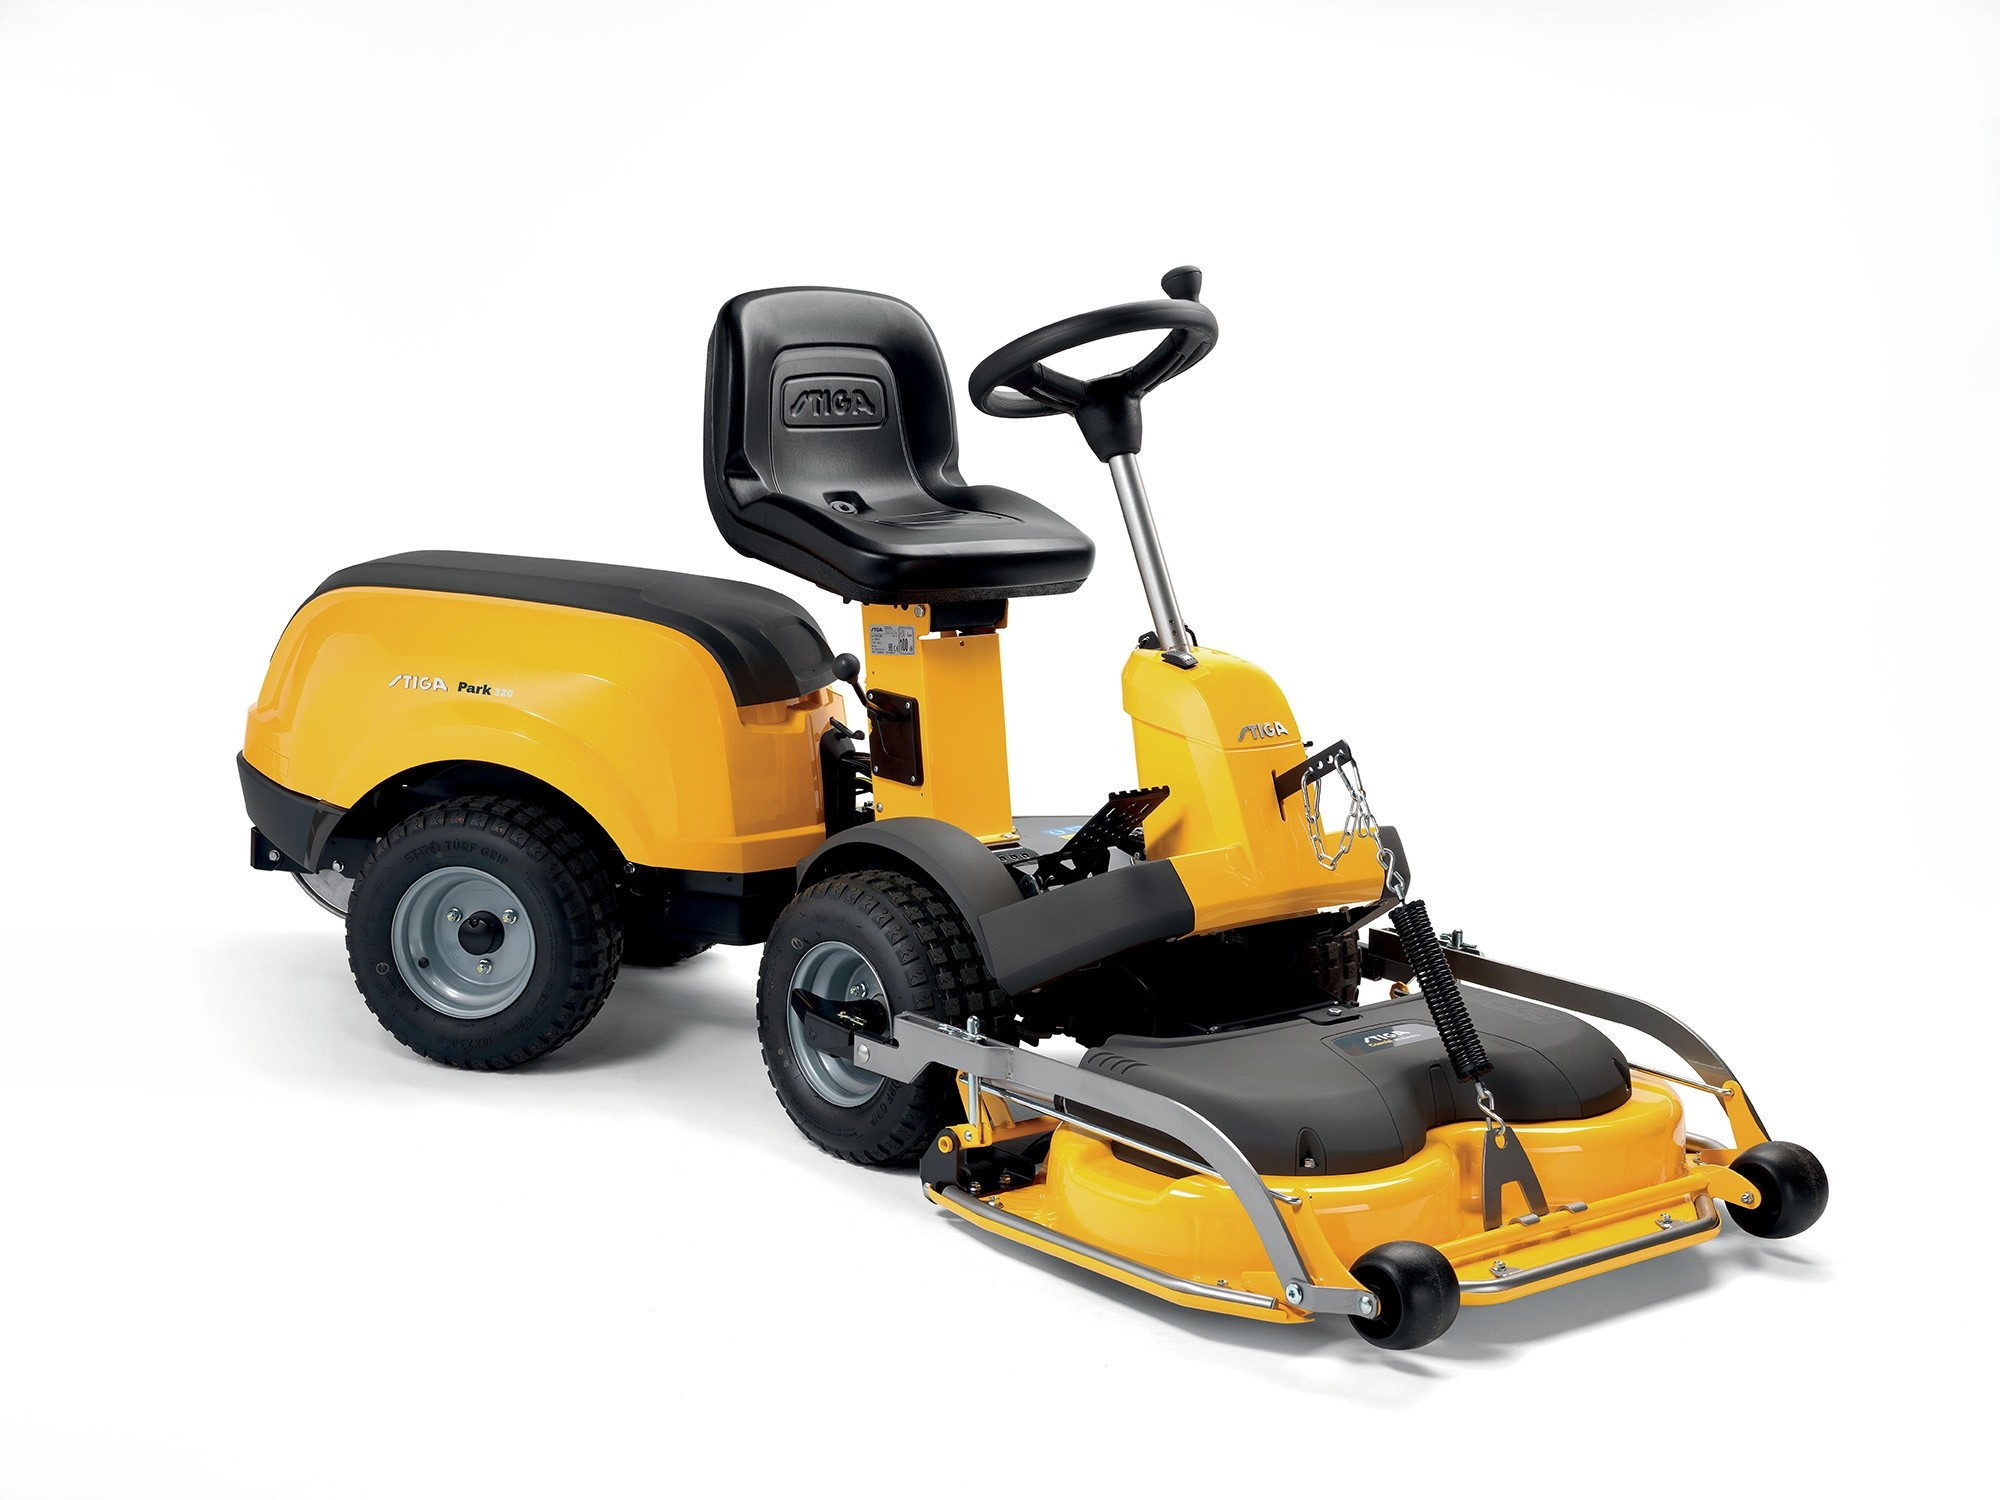 Park 320 lawnmower